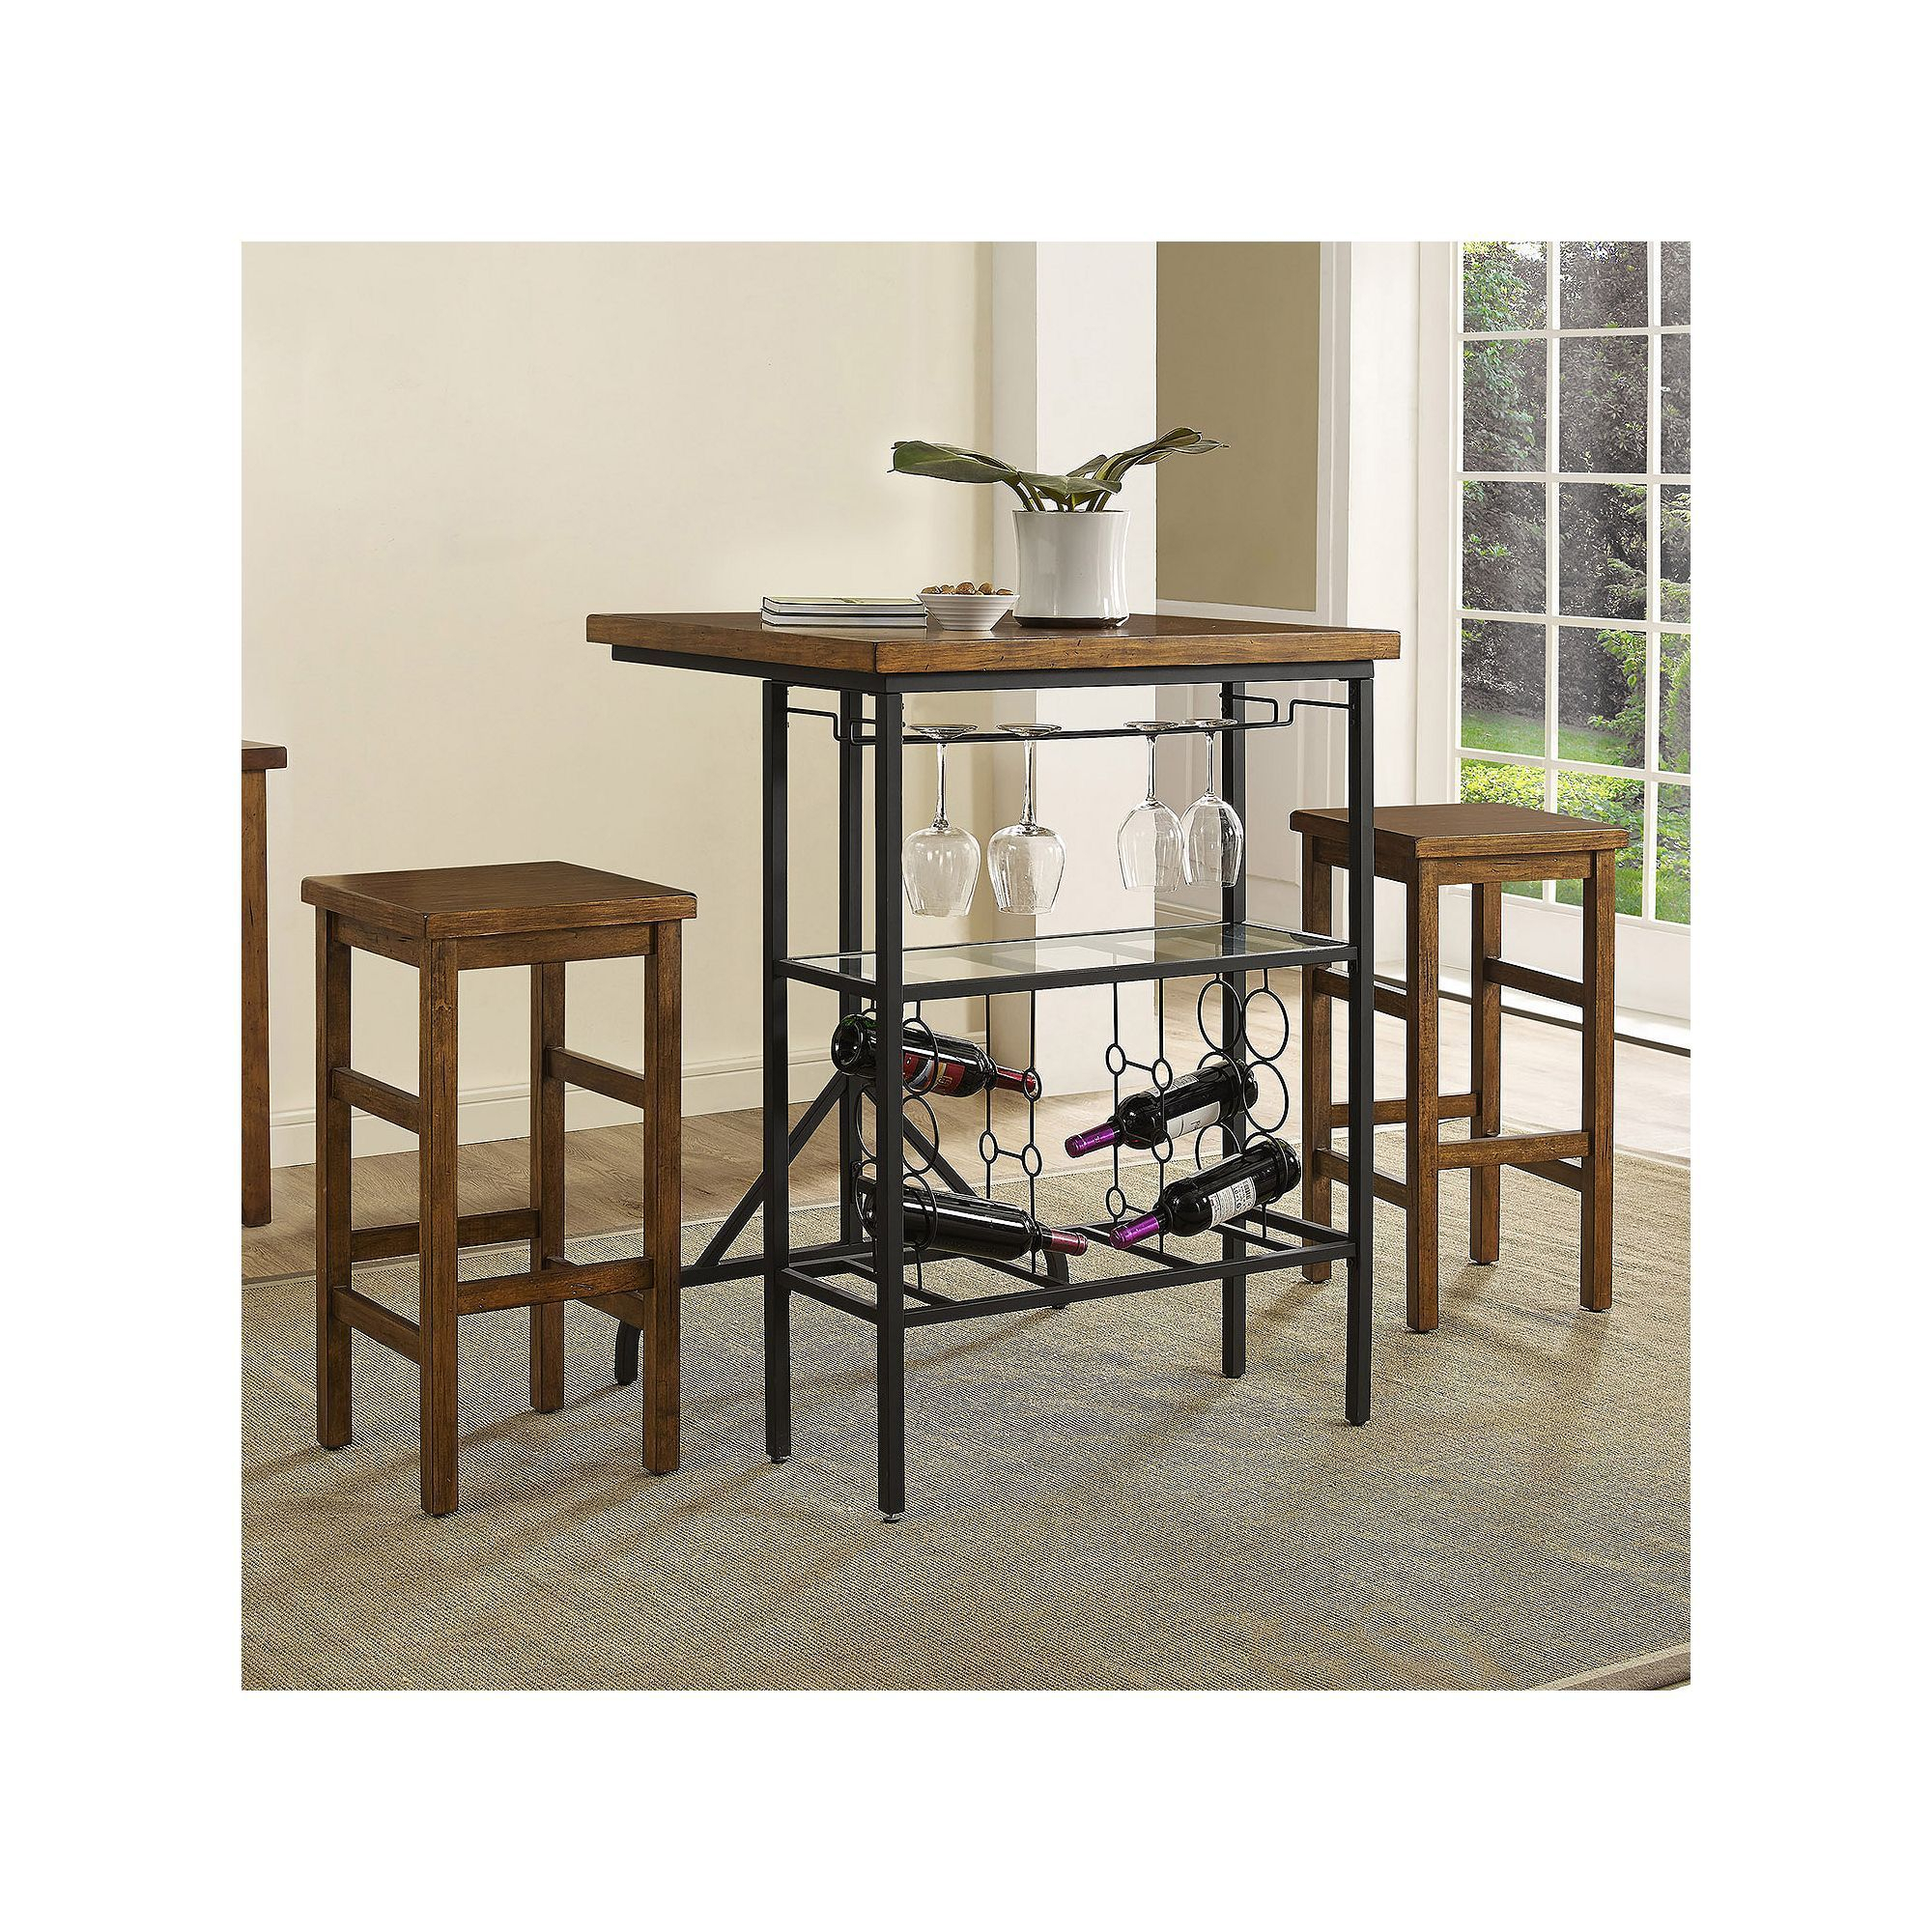 Crosley Furniture Sienna Wine Rack Bistro Table & Bar Stool 3 Piece For 2019 Hood Canal 3 Piece Dining Sets (#2 of 20)